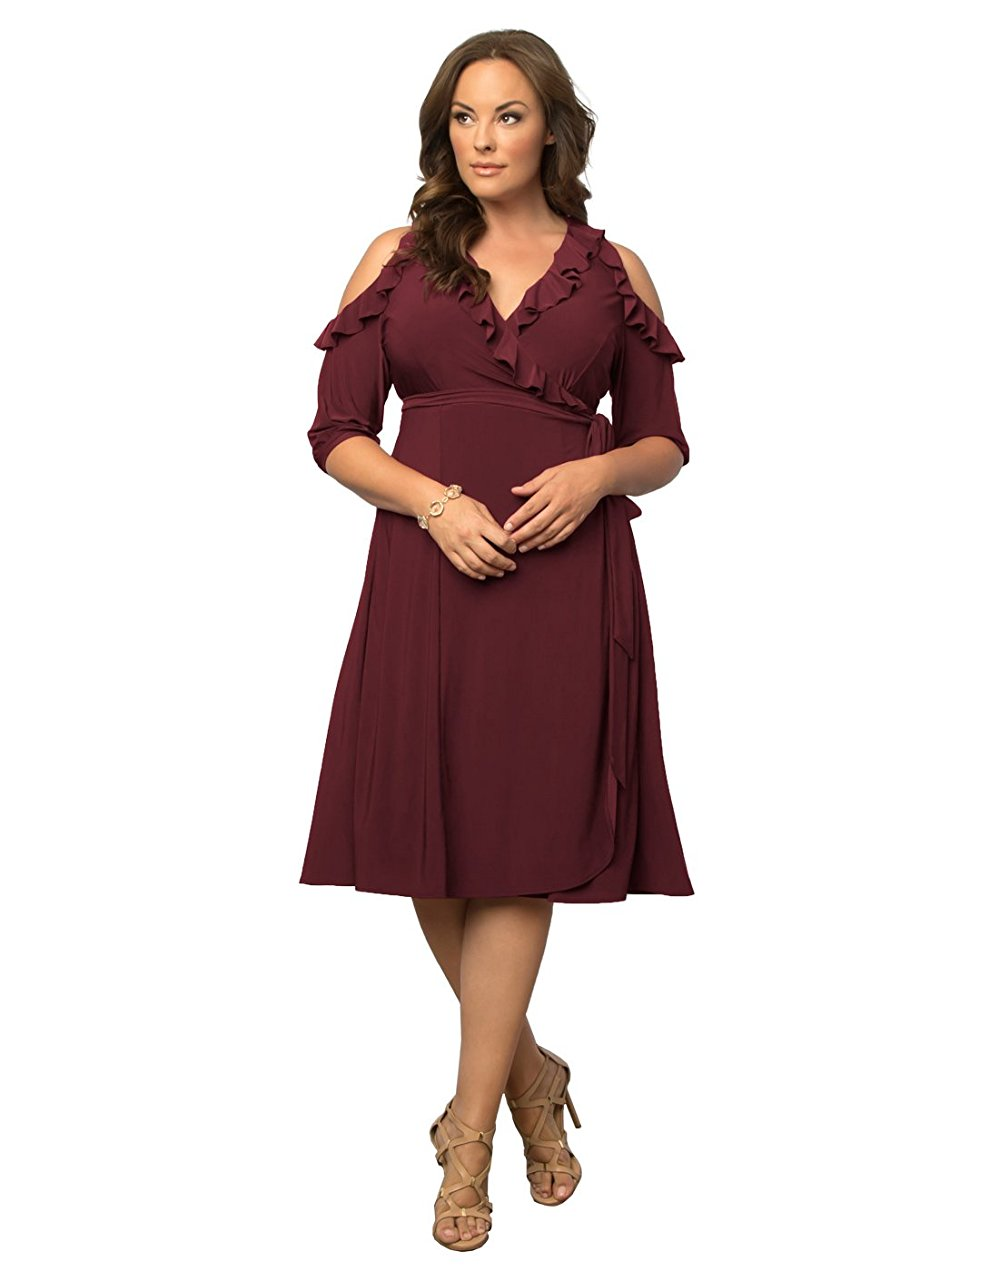 tips for buying plus size holiday dresses 3 - tips-for-buying-plus-size-holiday-dresses-3